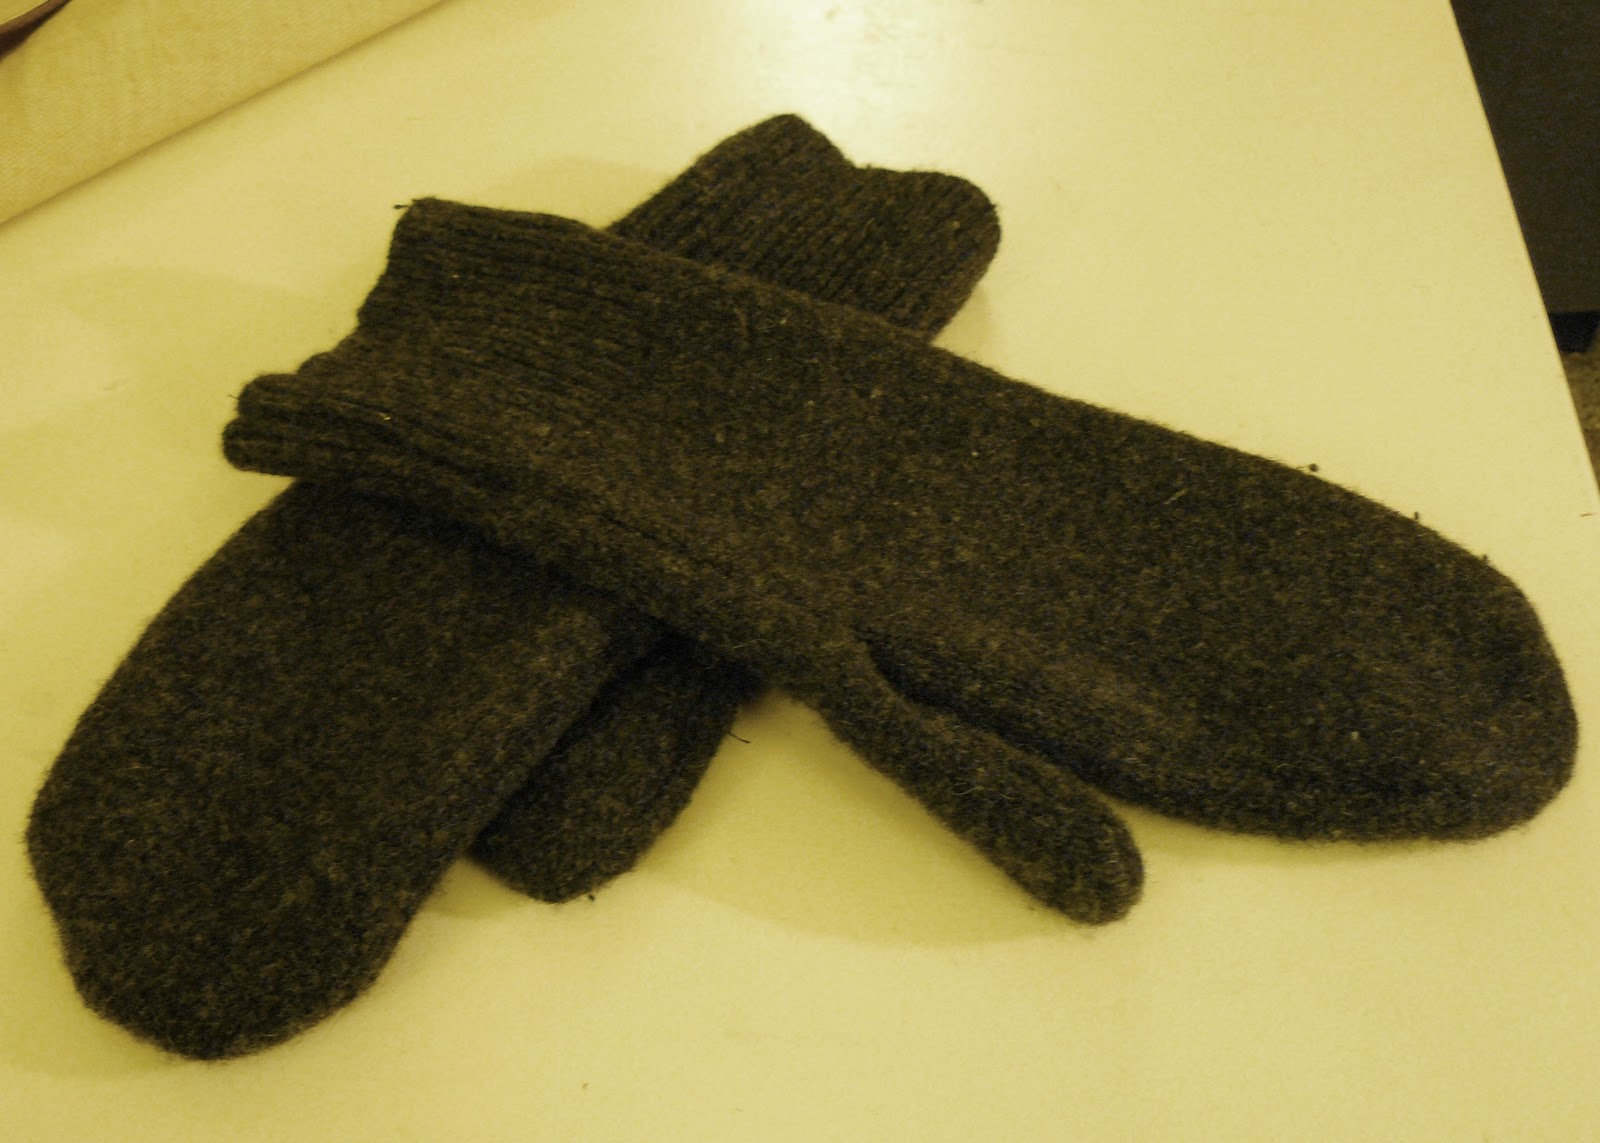 felted wool projects Find great deals on ebay for felted wool projects shop with confidence.